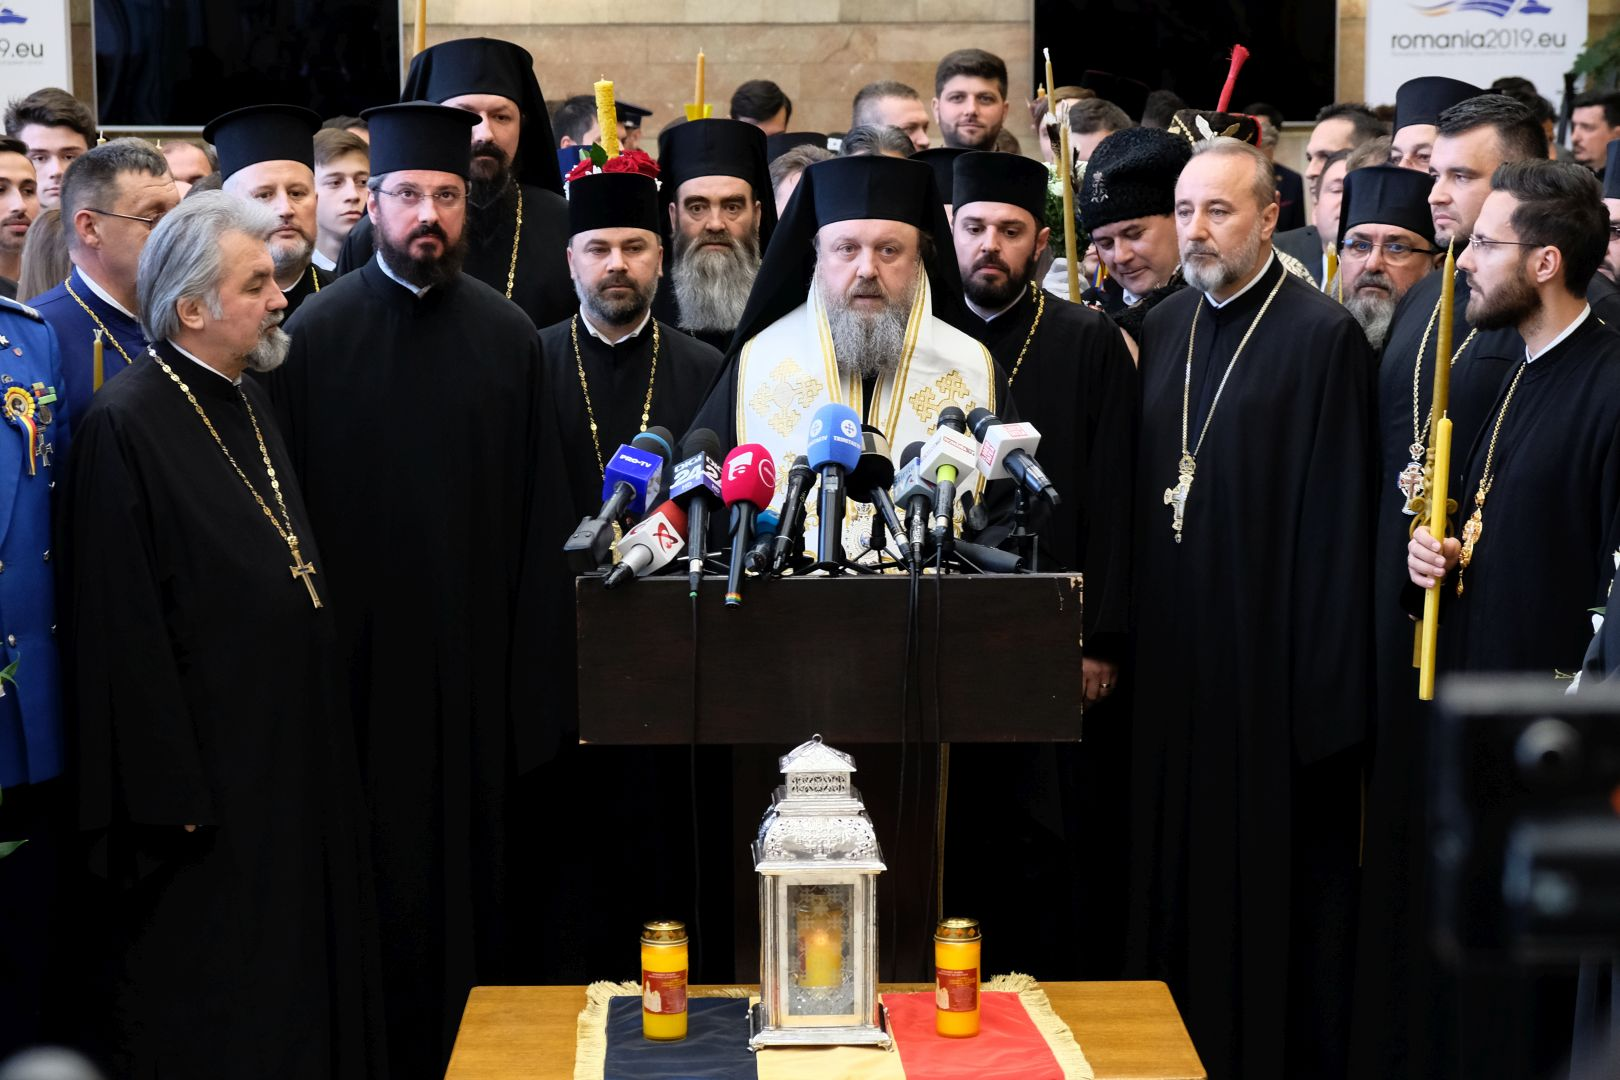 Romania: Ministry of Interior and the Orthodox Church come to an agreement on the Easter Celebrations